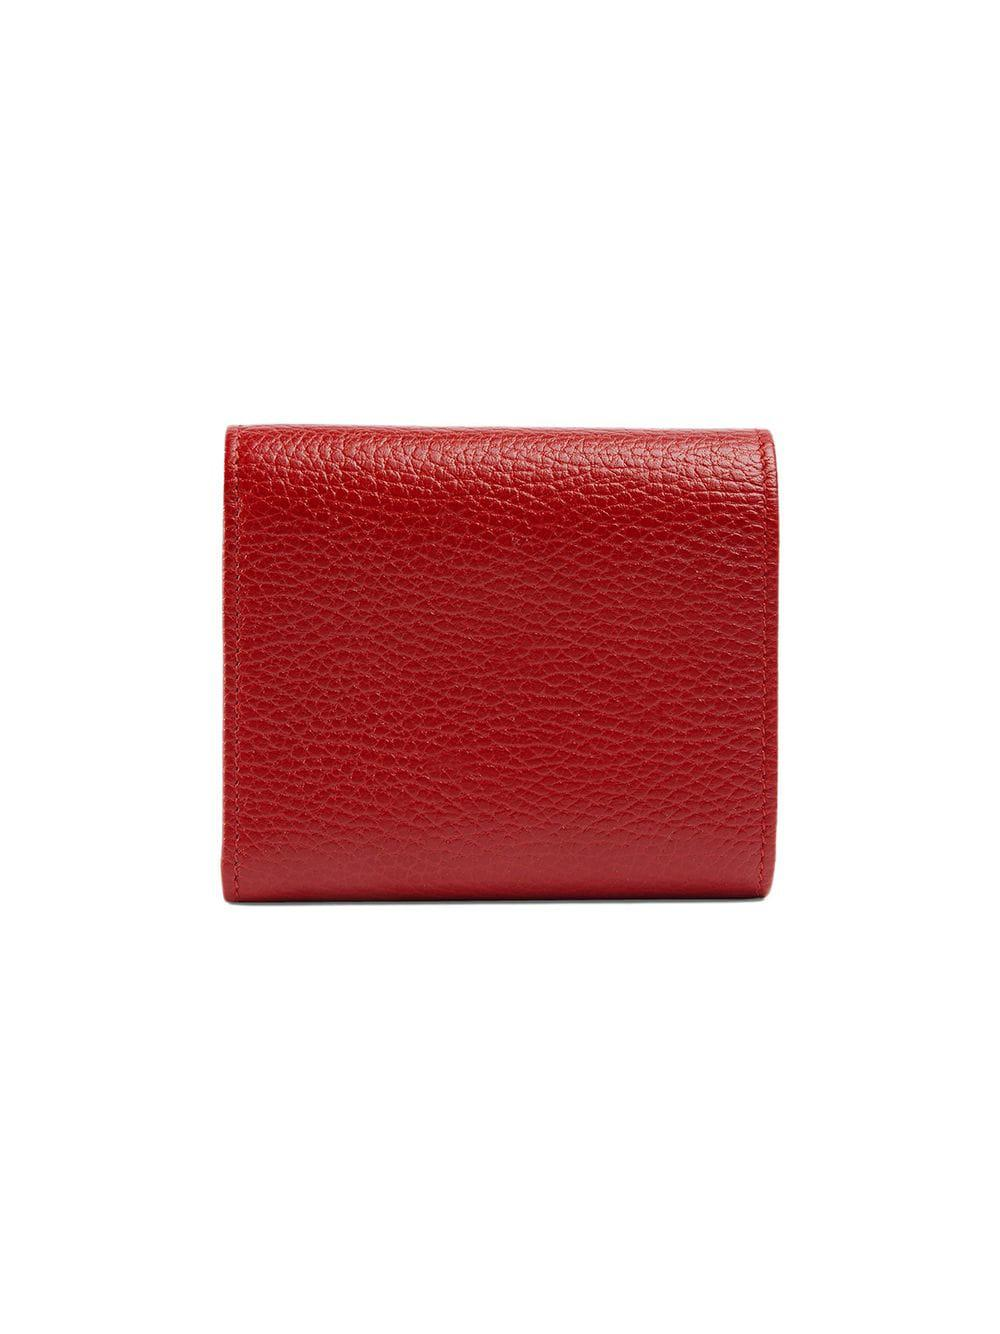 0659bd74bd2c83 Gucci GG Marmont Leather Wallet in Red - Lyst